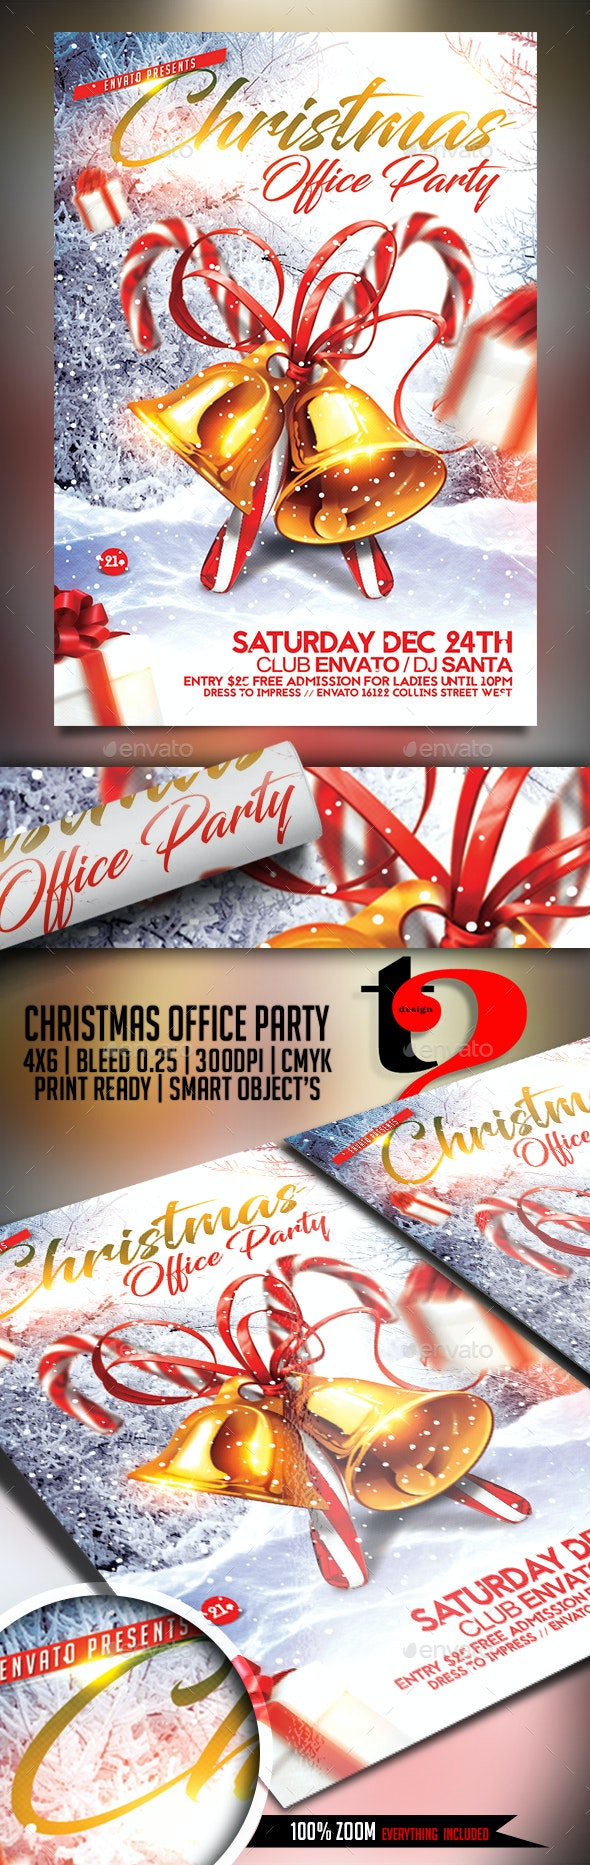 Christmas Office Party Flyer - Holidays Events